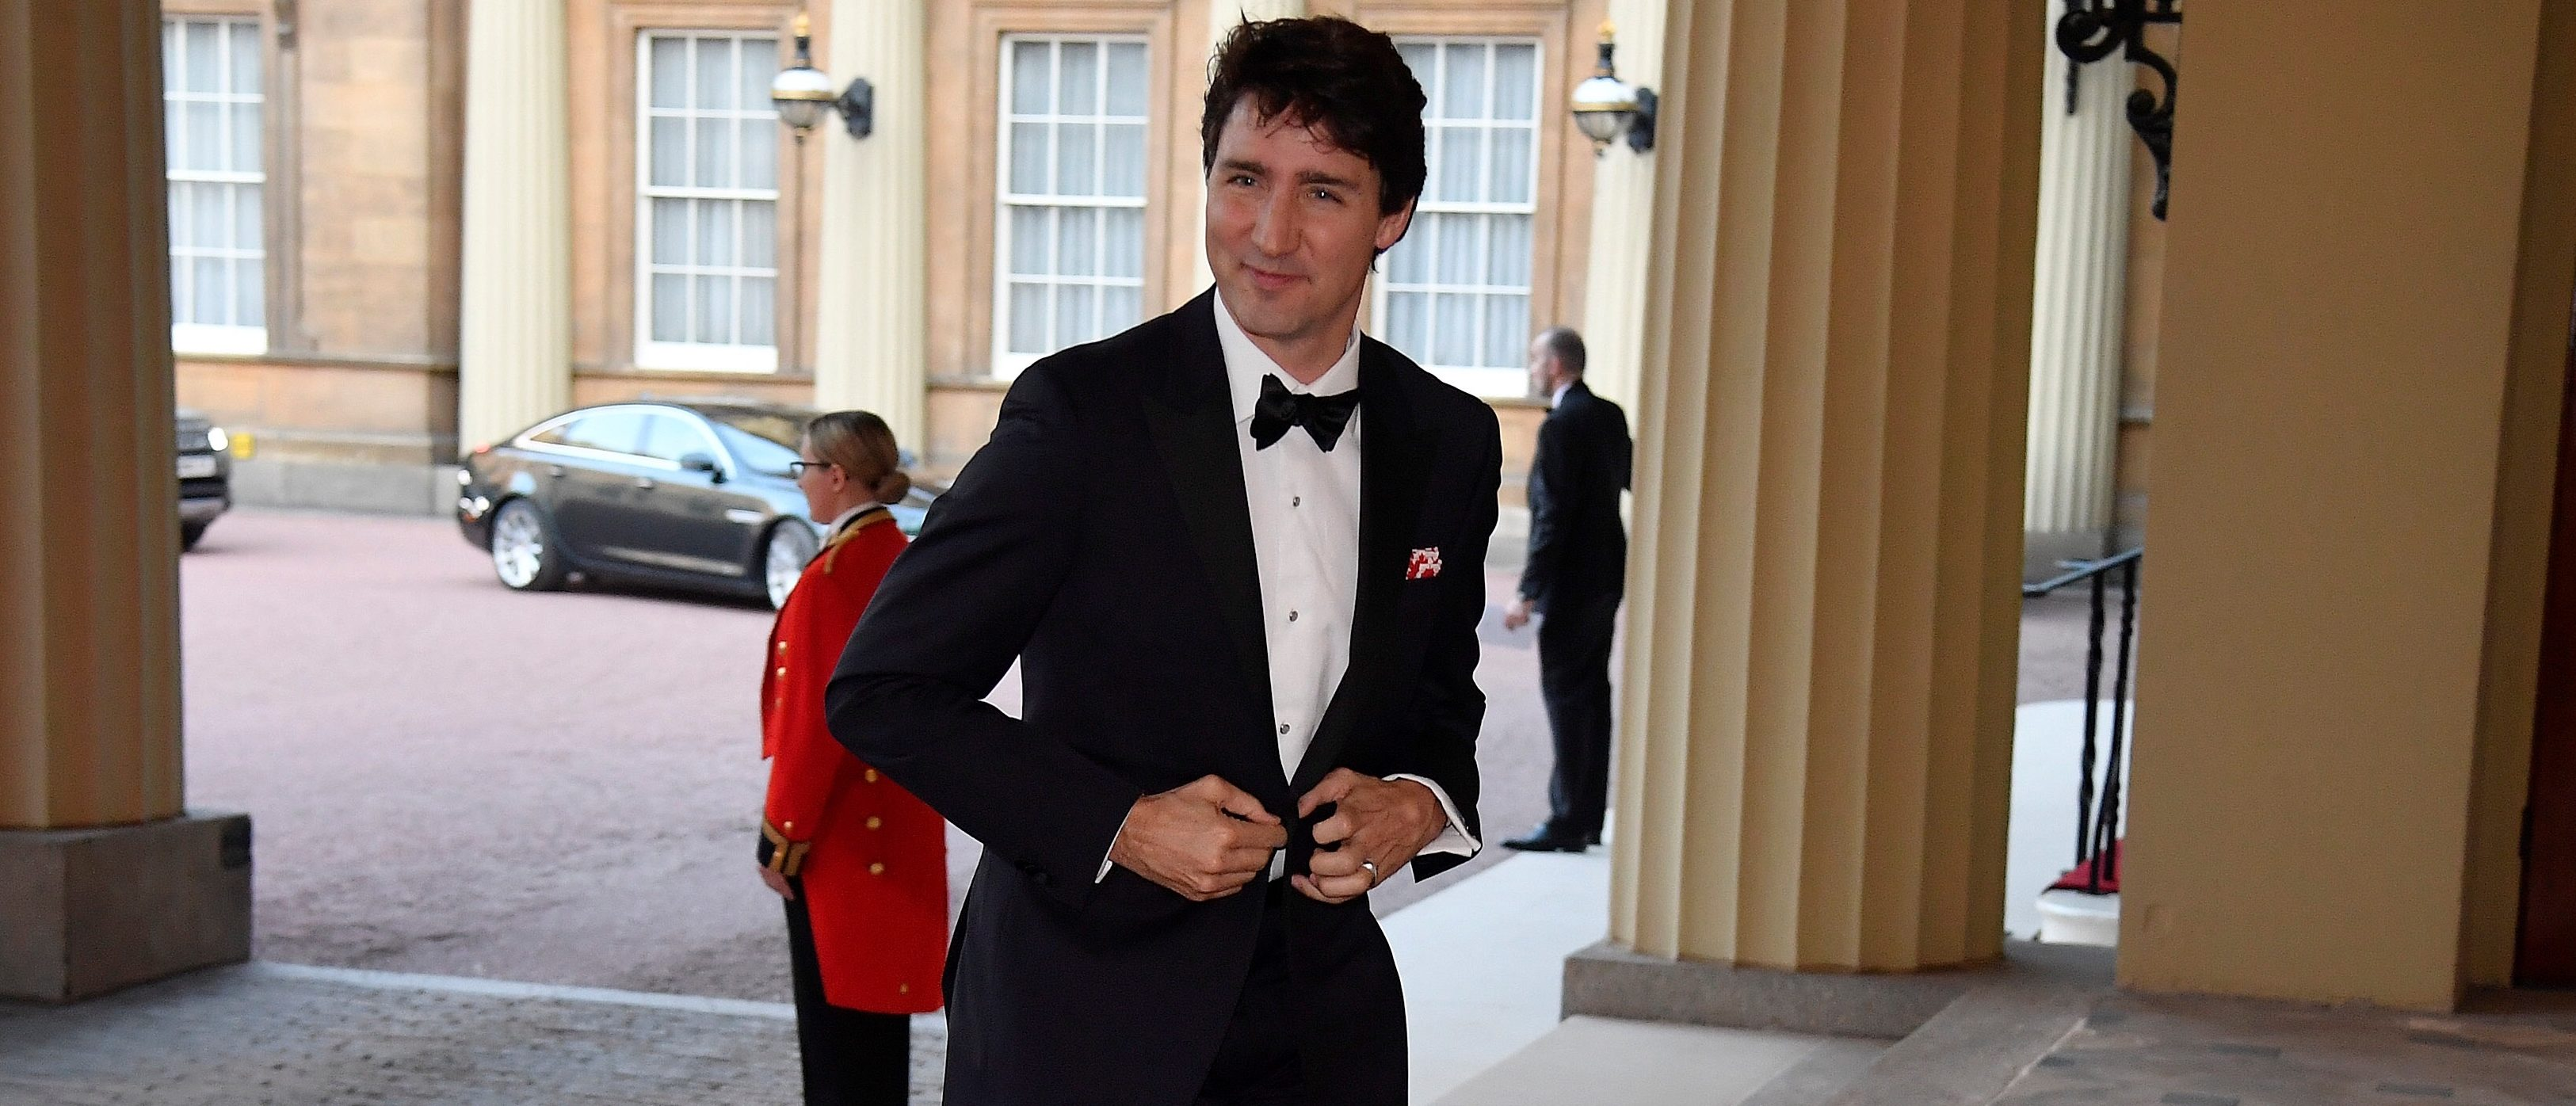 Canada's Prime Minister Justin Trudeau arrives for The Queen's Dinner during the Commonwealth Heads of Government Meeting at Buckingham Palace in London, Britain, April 19, 2018. REUTERS/Toby Melville/Pool